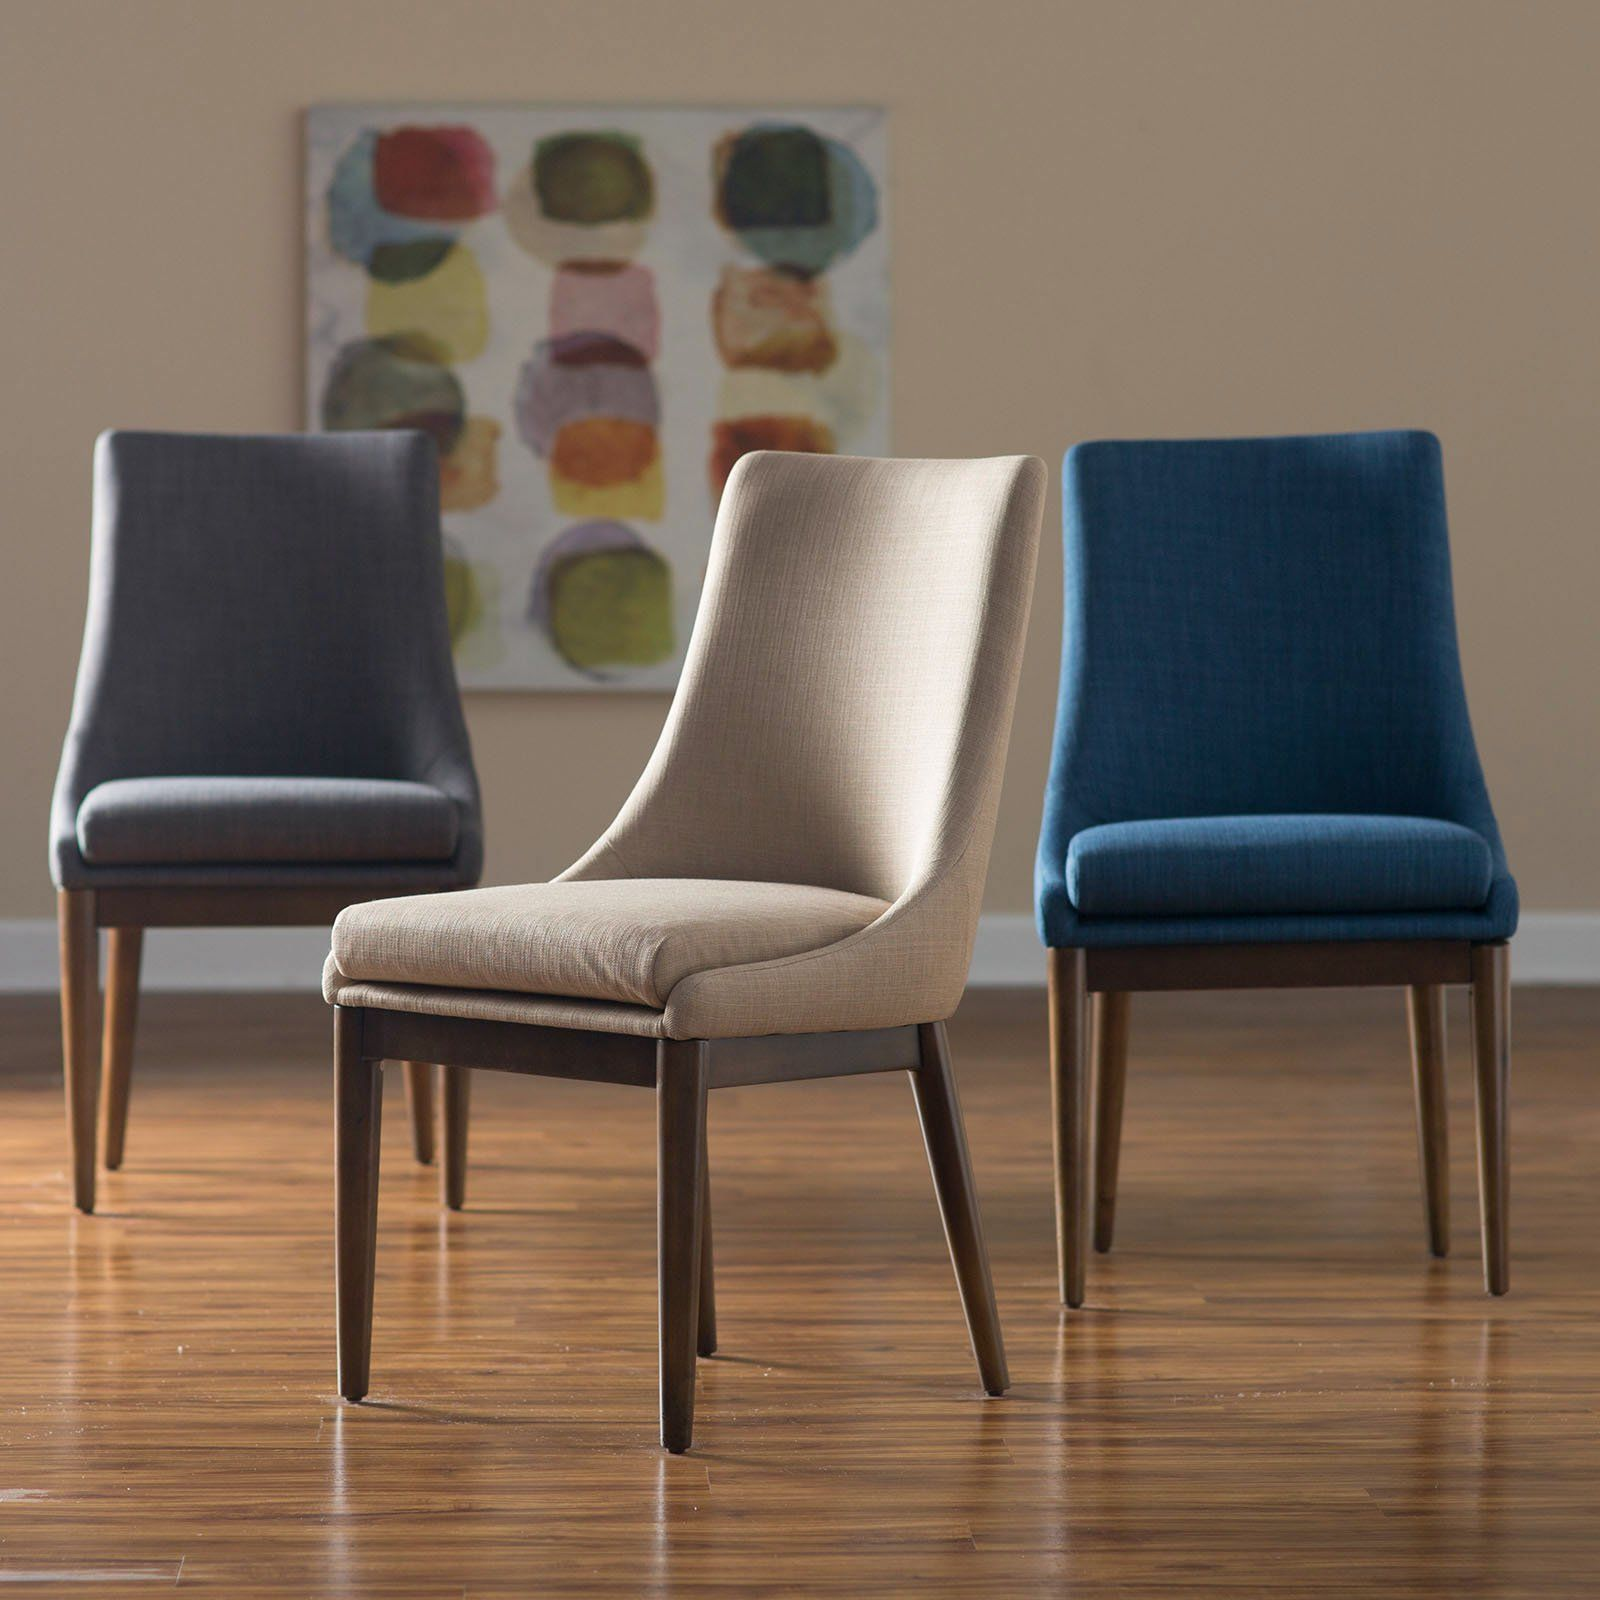 Belham living carter mid century modern upholstered dining chair set of 2 from hayneedle com